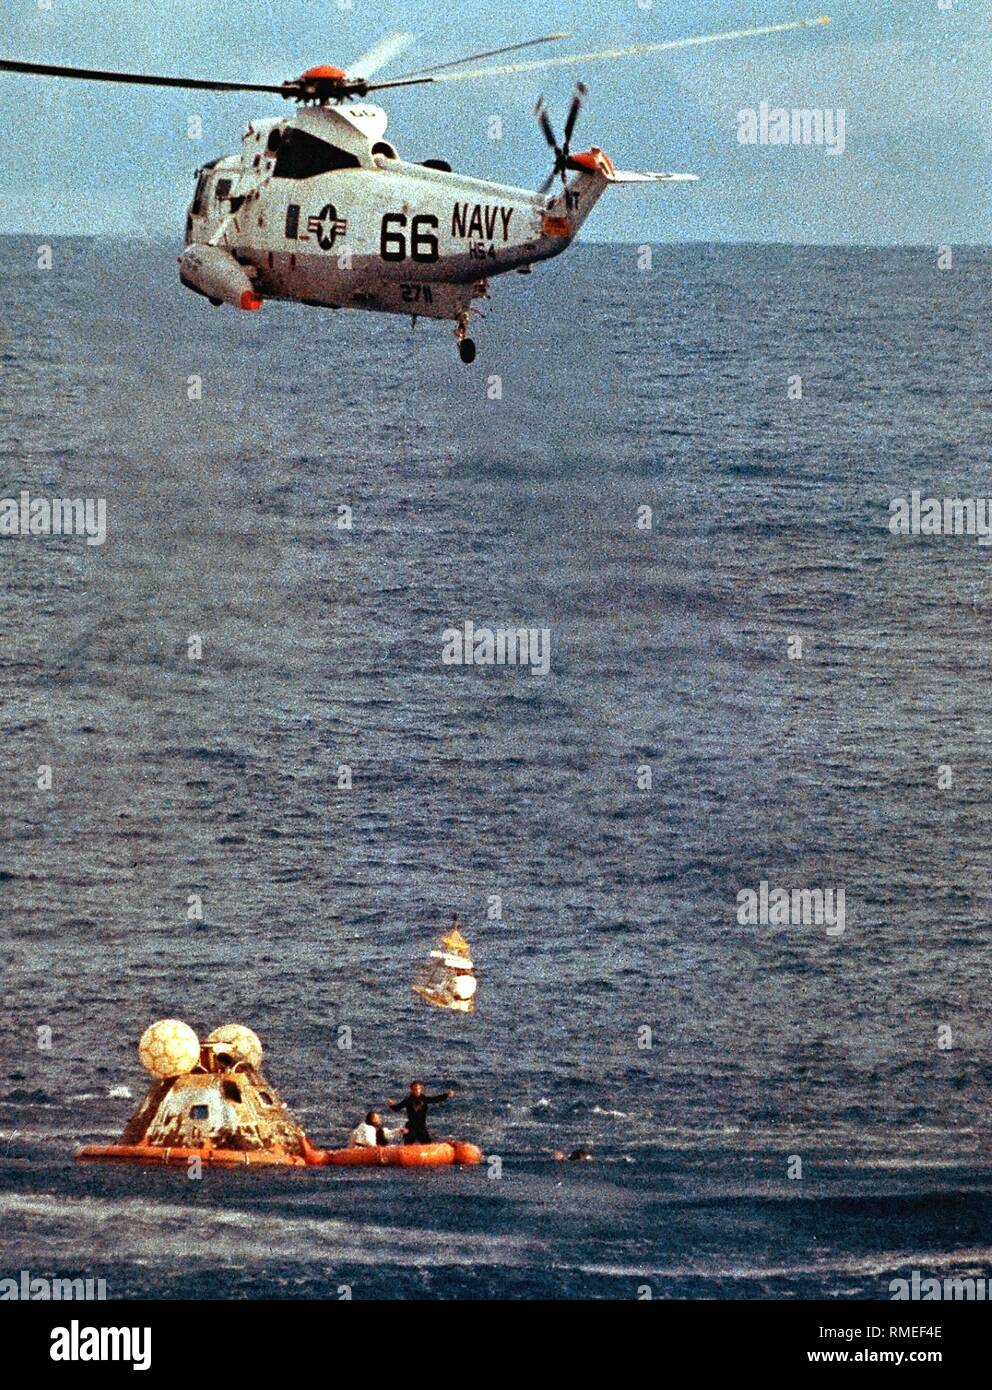 Apollo 13 High Resolution Stock Photography And Images